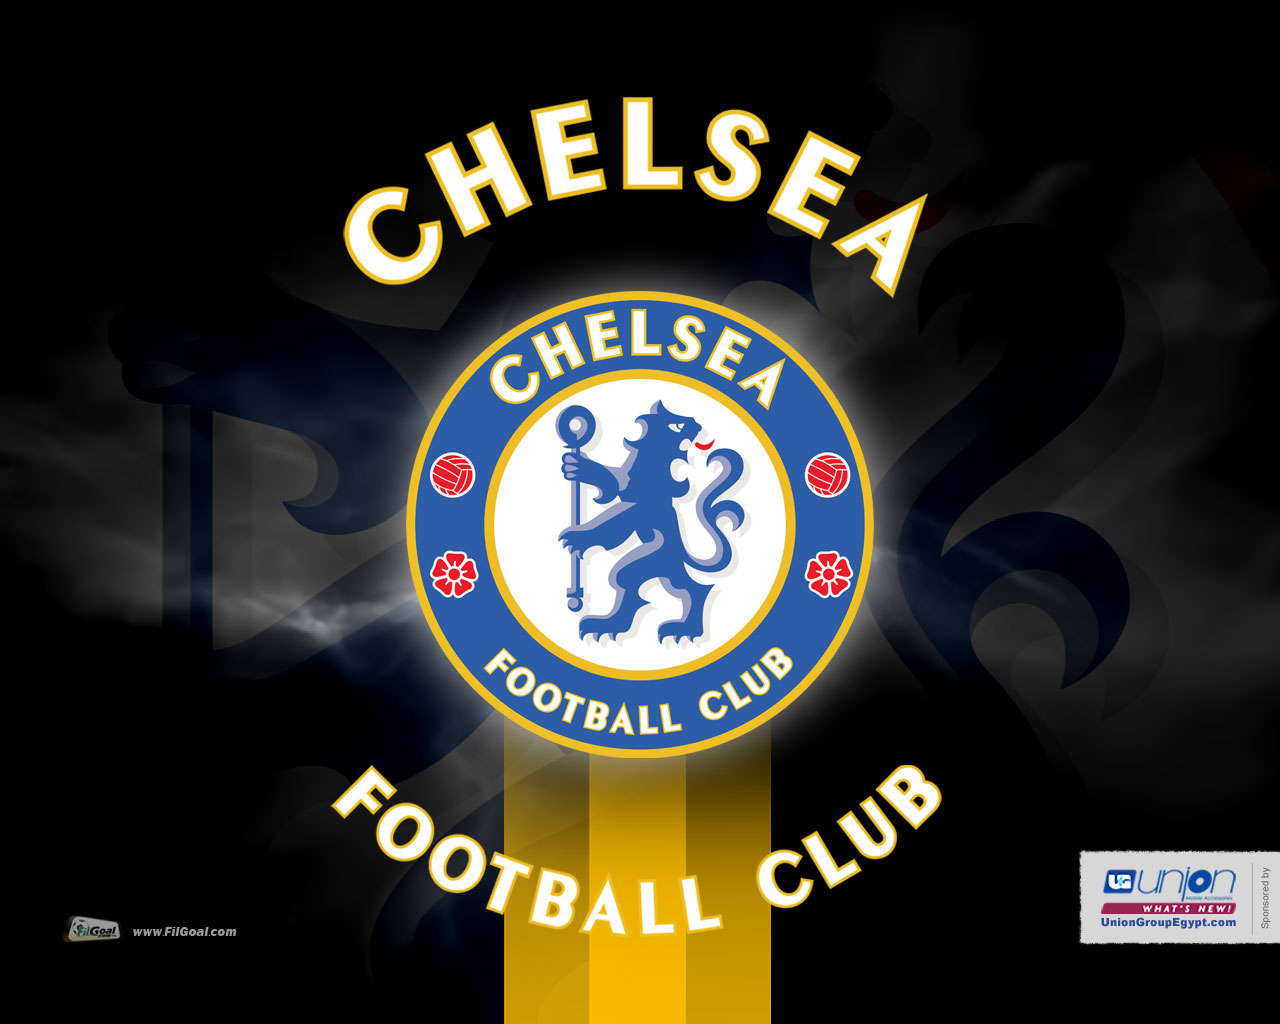 chelsea-wallpapers-chelseafc-wallpapers-1.jpg